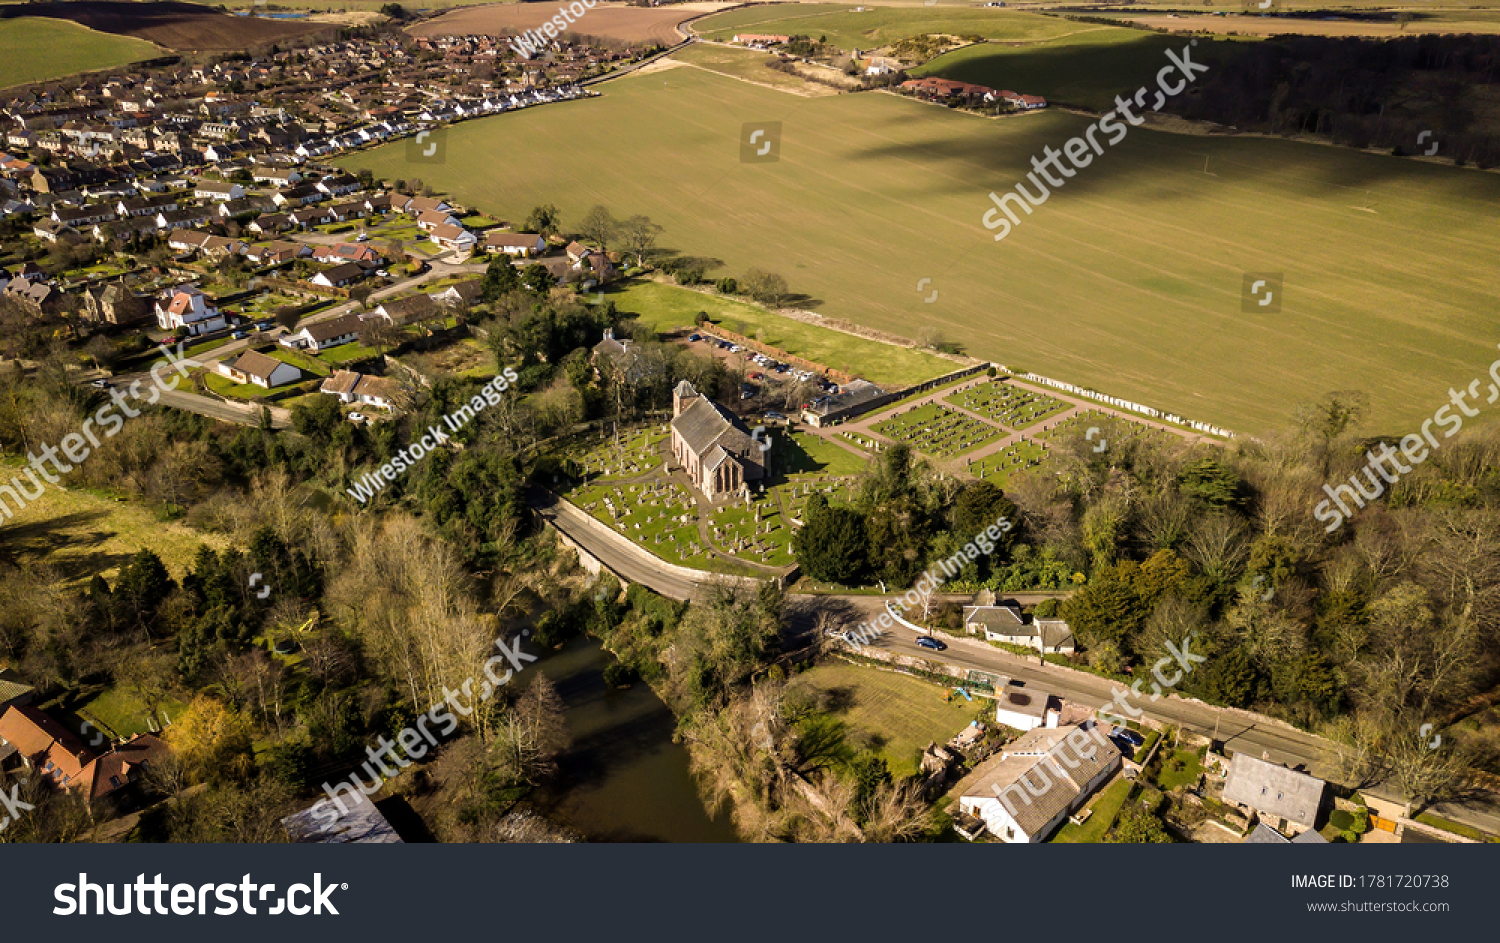 East Linton is a village in East Lothian, Scotland on the River Tyne east of Haddington, UK. #1781720738